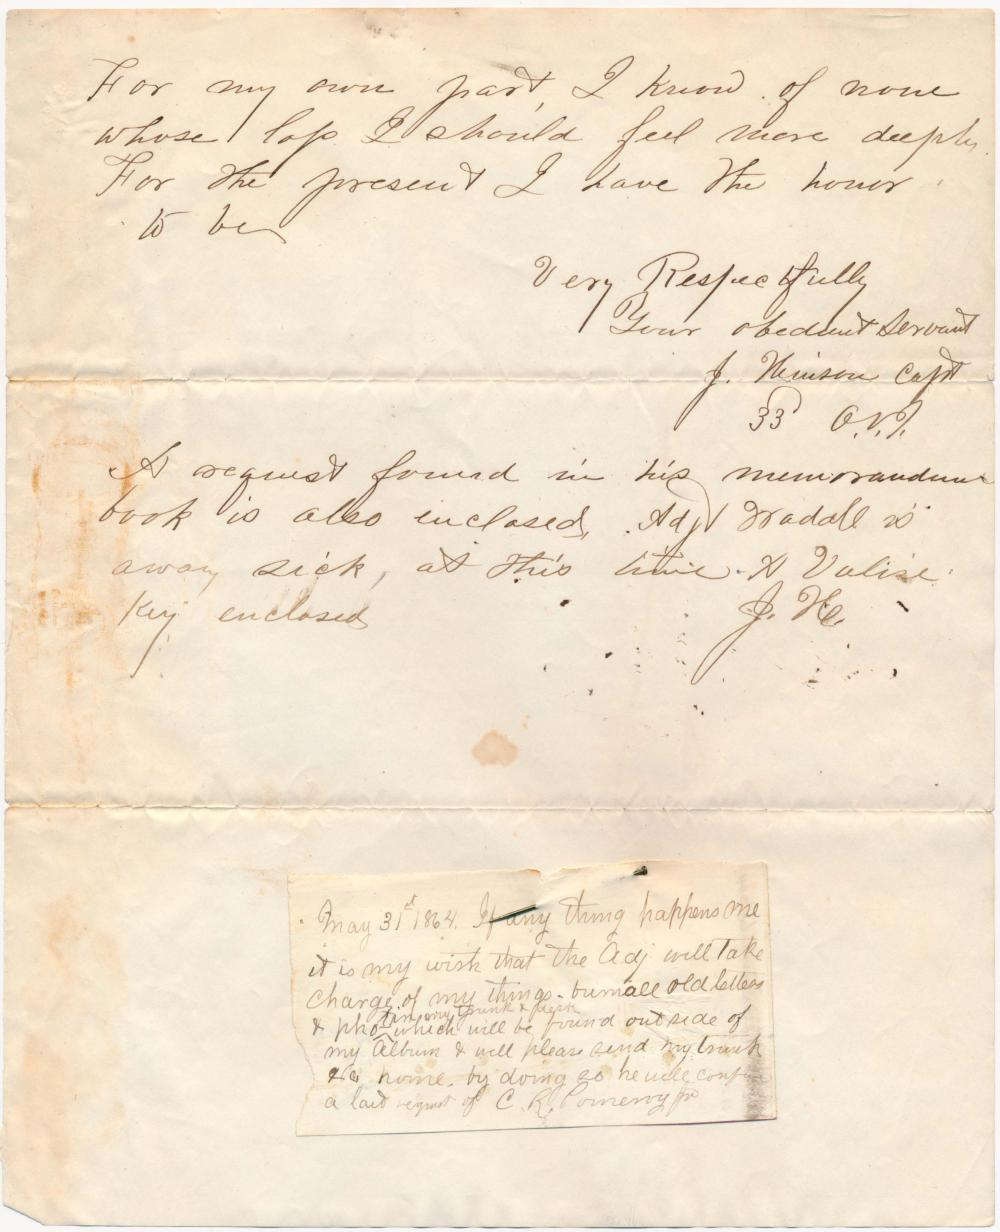 DEATH BEFORE ATLANTA - THE LAST LETTER, FINAL REQUEST, AND RELATED CORRESPONDENCE OF 1ST LT. CHARLES R. POMEROY, 33RD OHIO INFY.